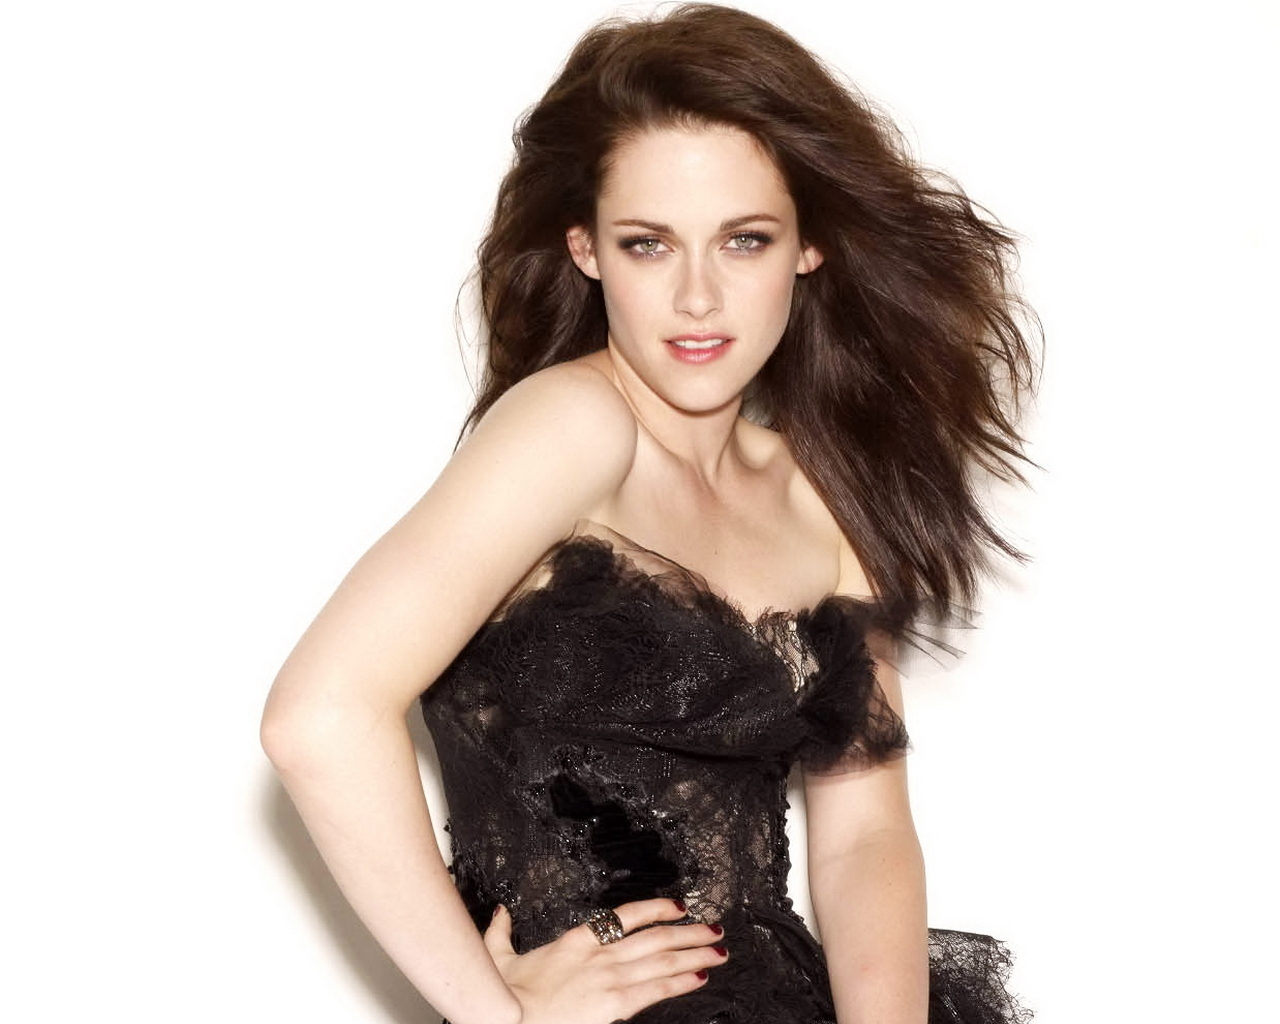 Kristen Stewart is a pictures of a beautifull and sexy. Kristen Stewart